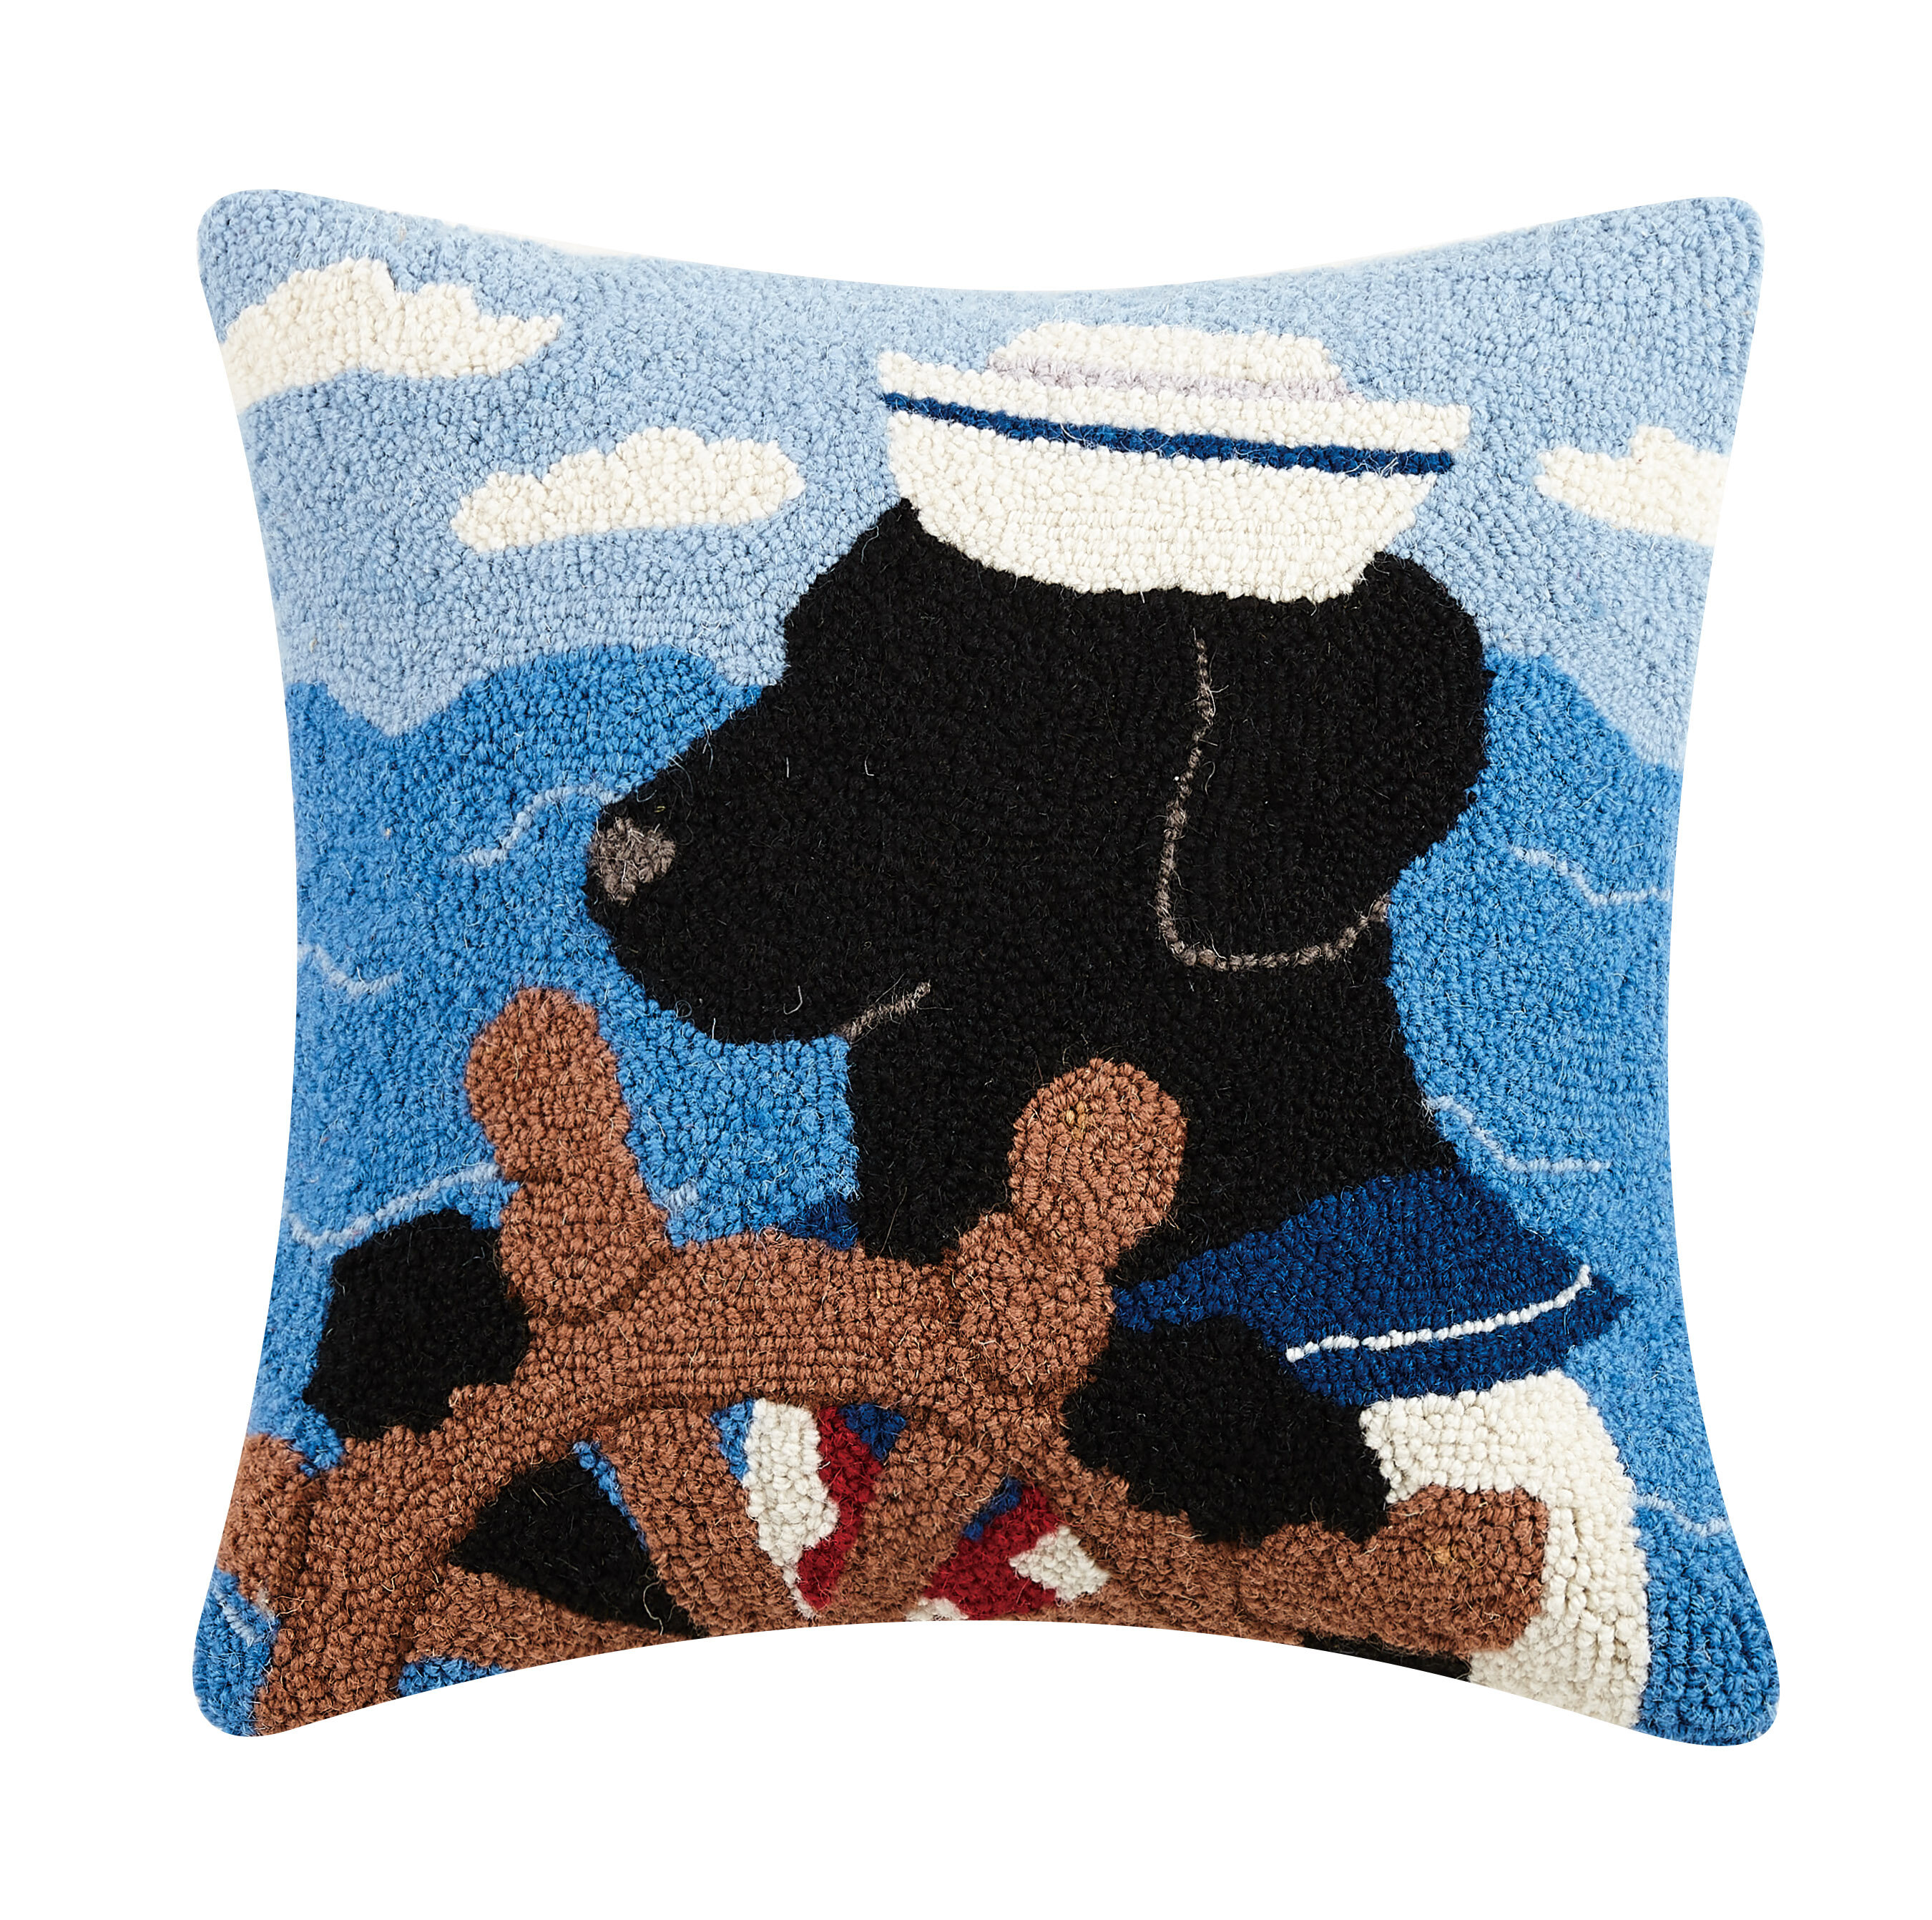 Wool Breakwater Bay Throw Pillows You Ll Love In 2021 Wayfair